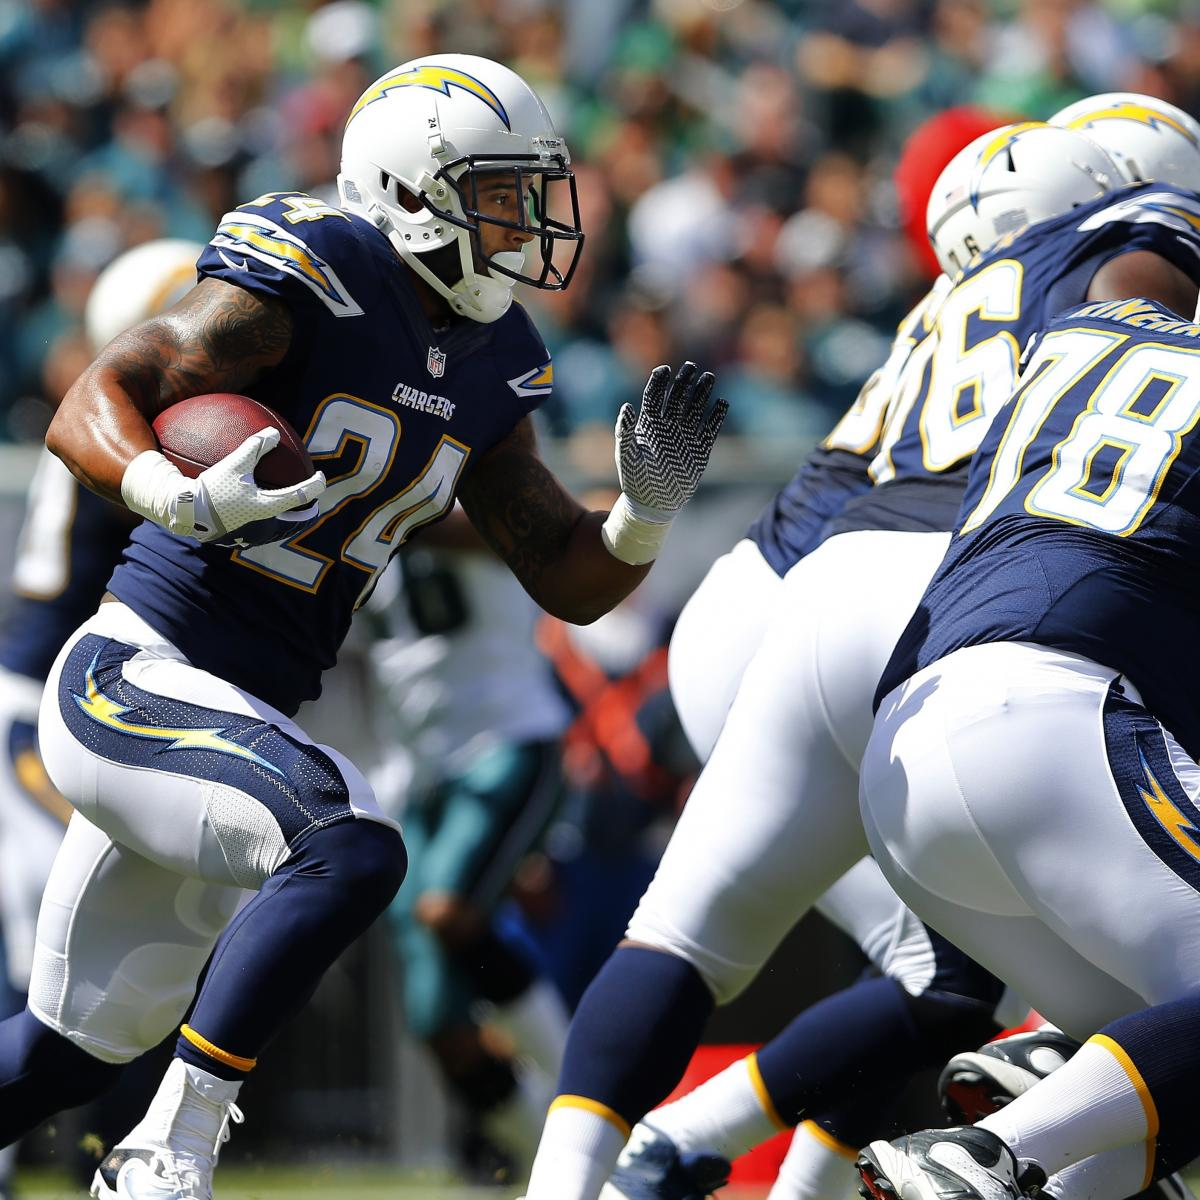 San Diego Chargers Broadcast: Ryan Mathews Injury: Updates On Chargers RB's Head, Likely